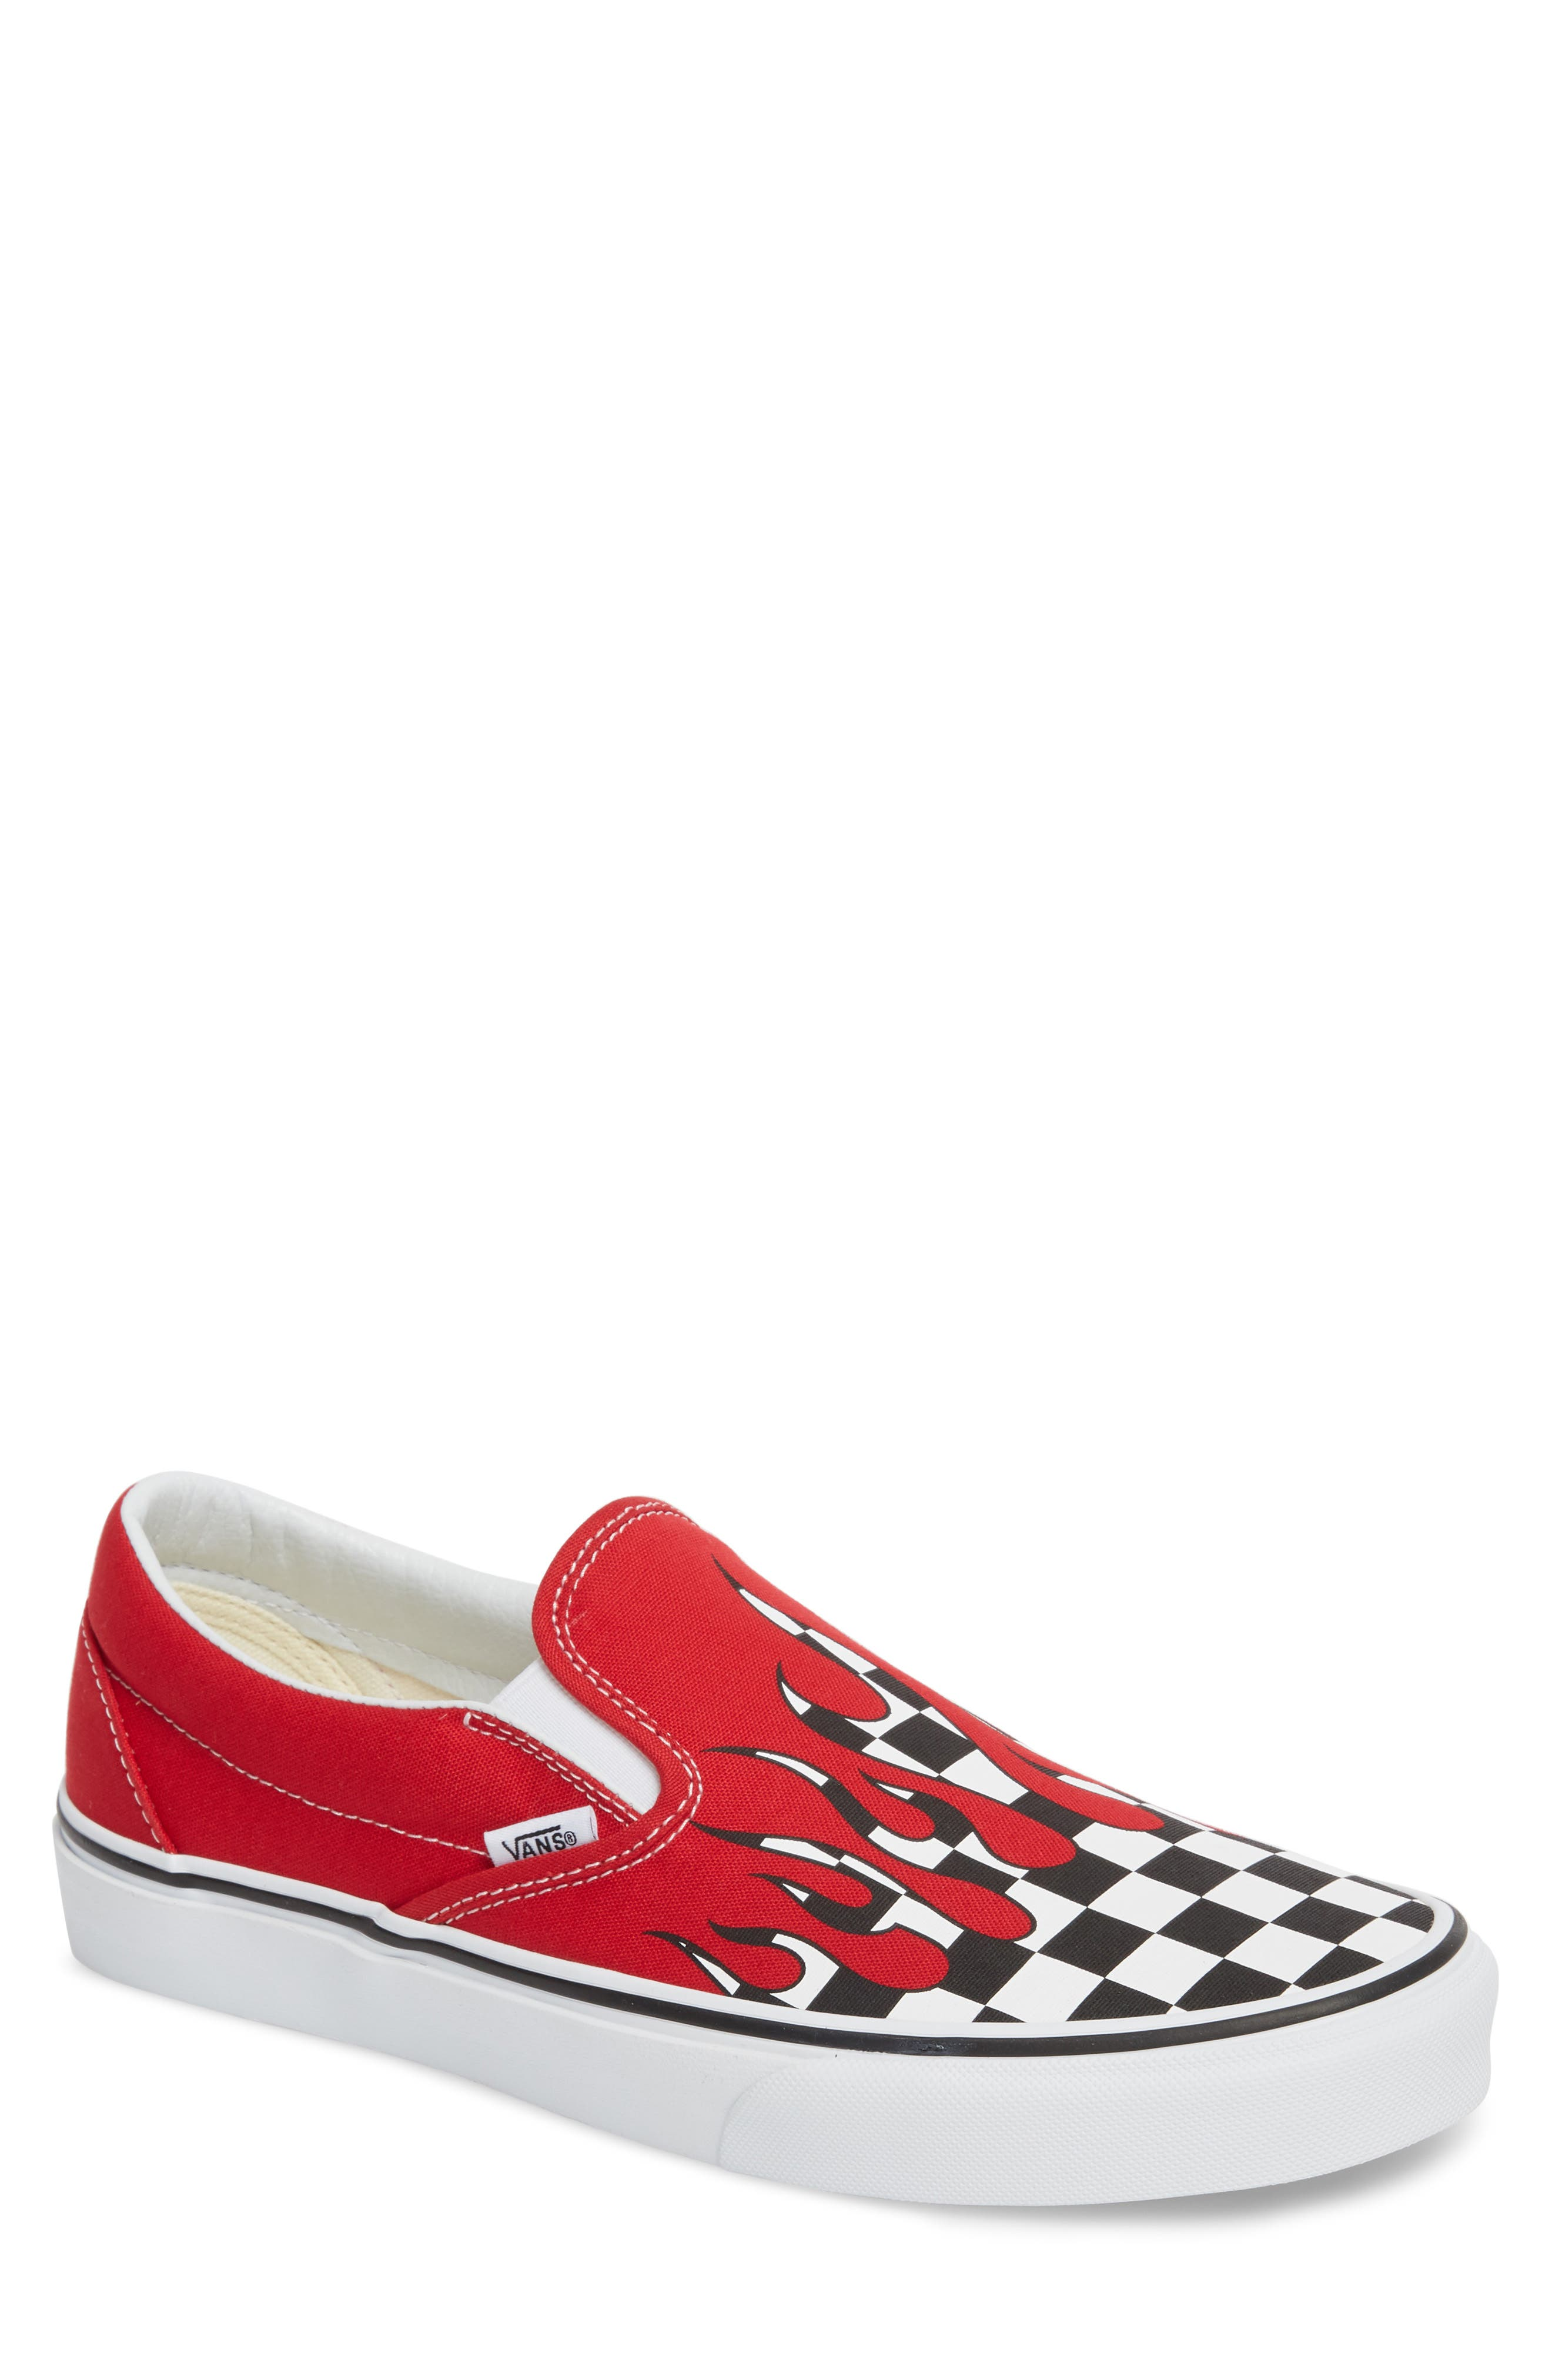 UA Classic Slip-On Sneaker,                         Main,                         color, Racing Red/ White Checker